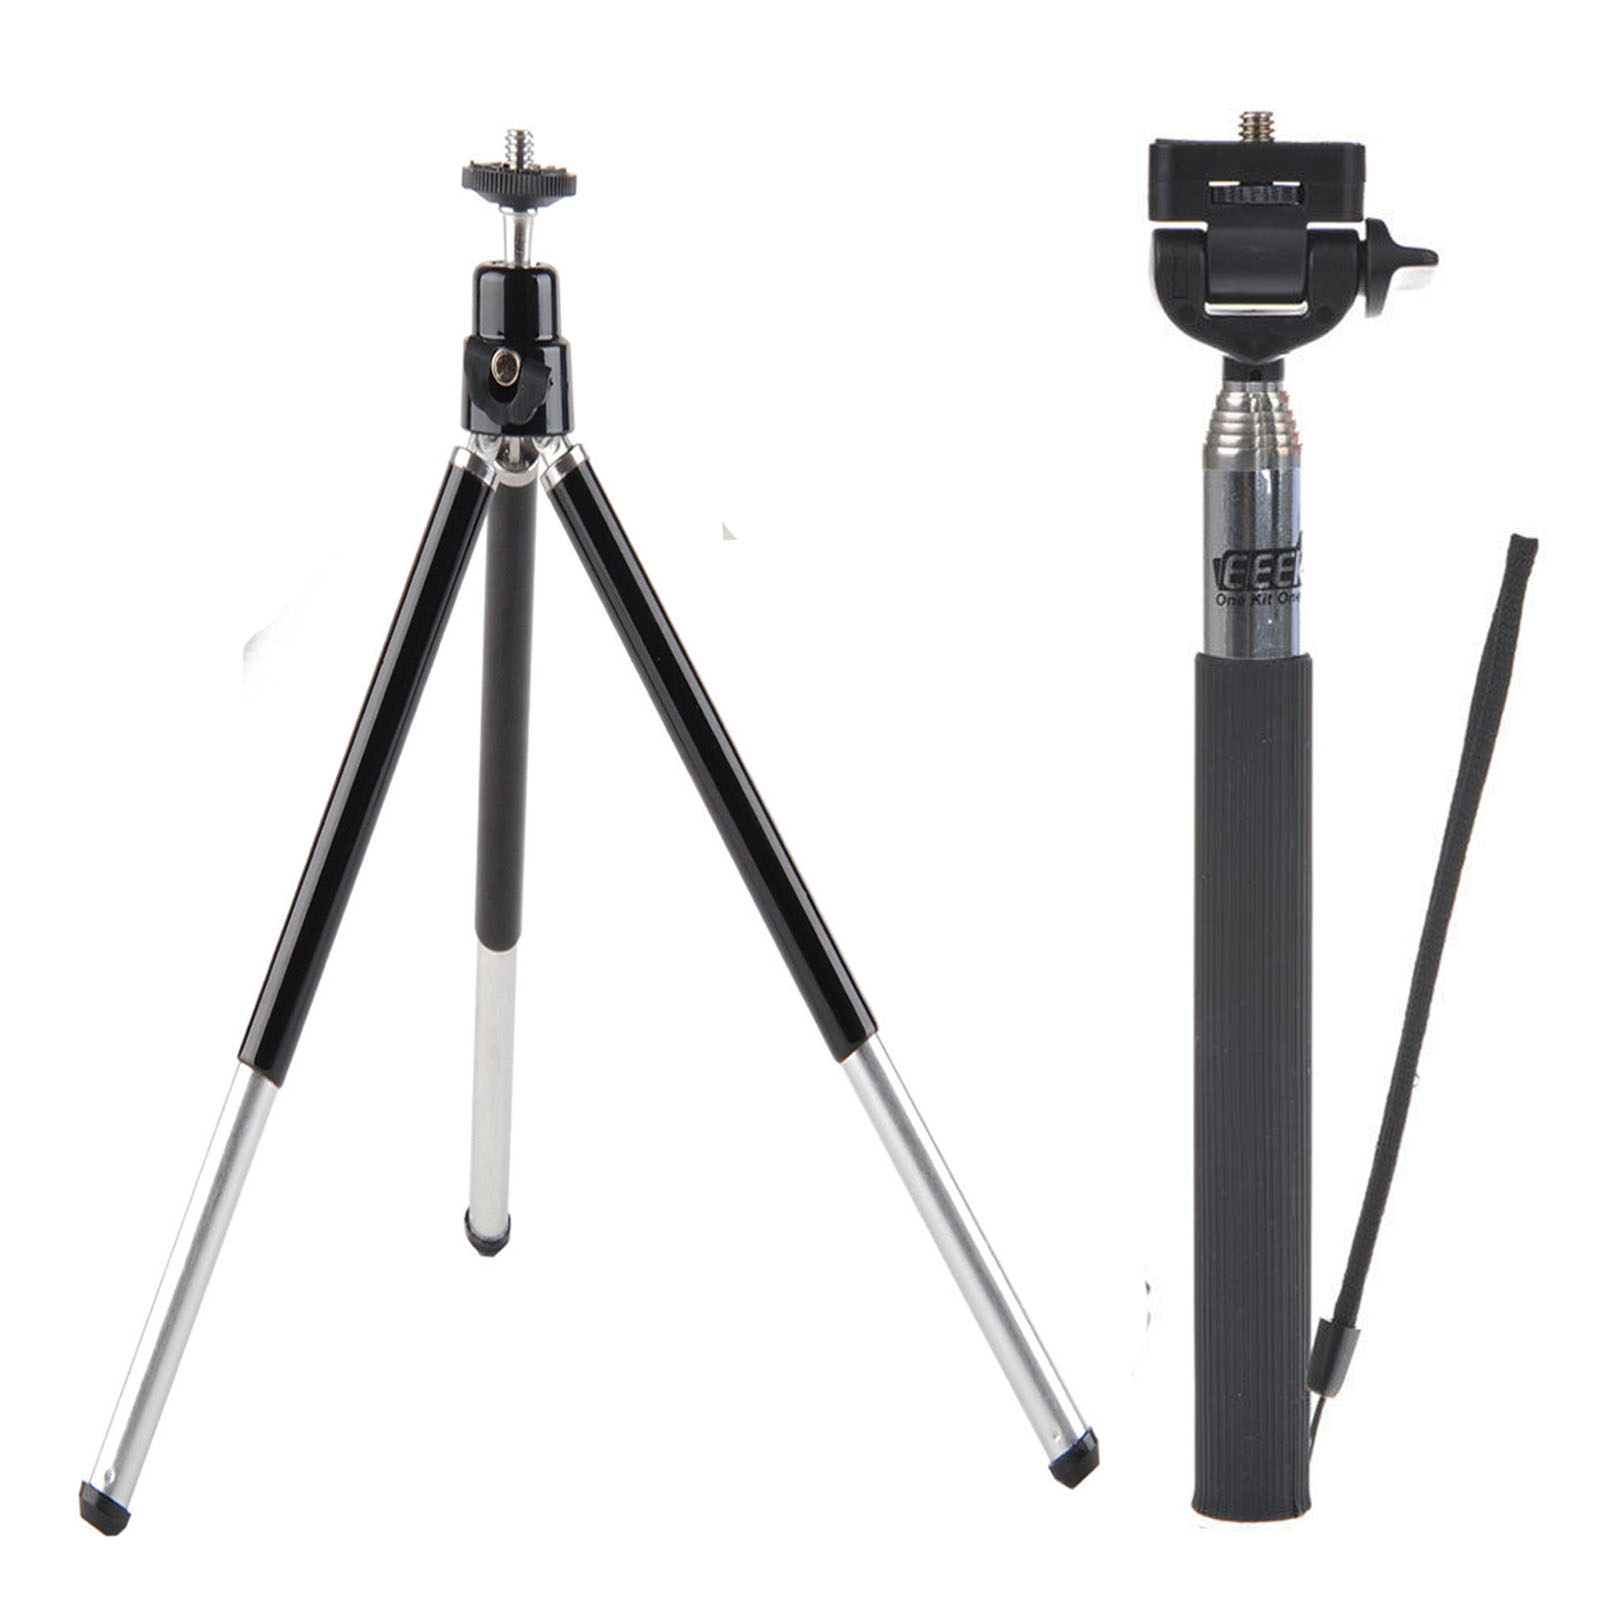 Selfie Stick Monopod,Mini Tripod for Ricoh Theta S SC/Ricoh Theta M15 360 Degree Camera,EEEKit 2in1 Kit